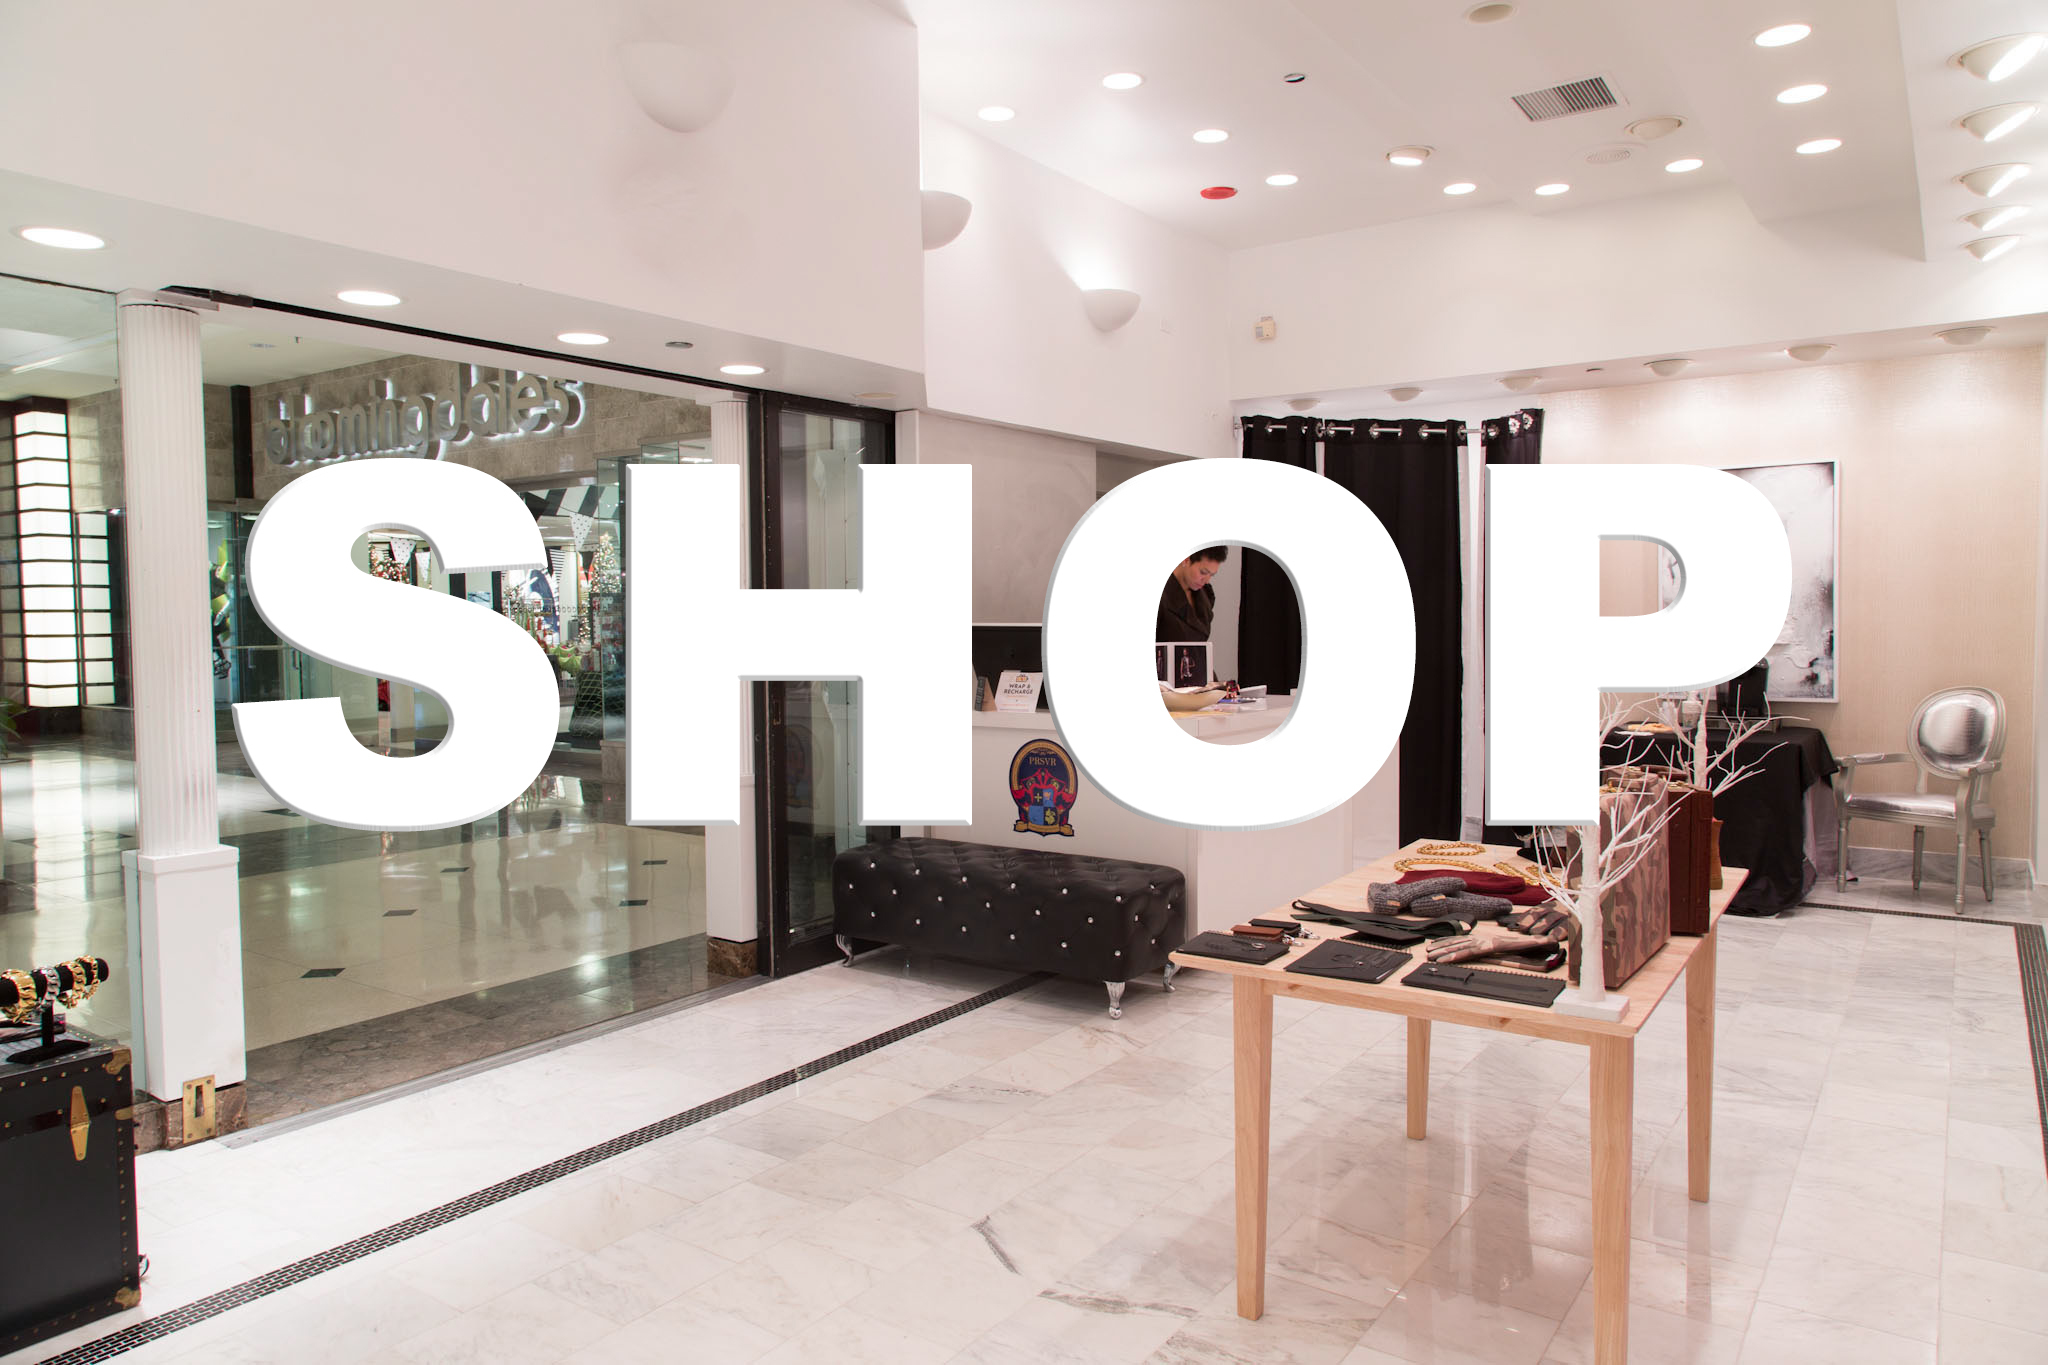 The best shops in River North and Streeterville